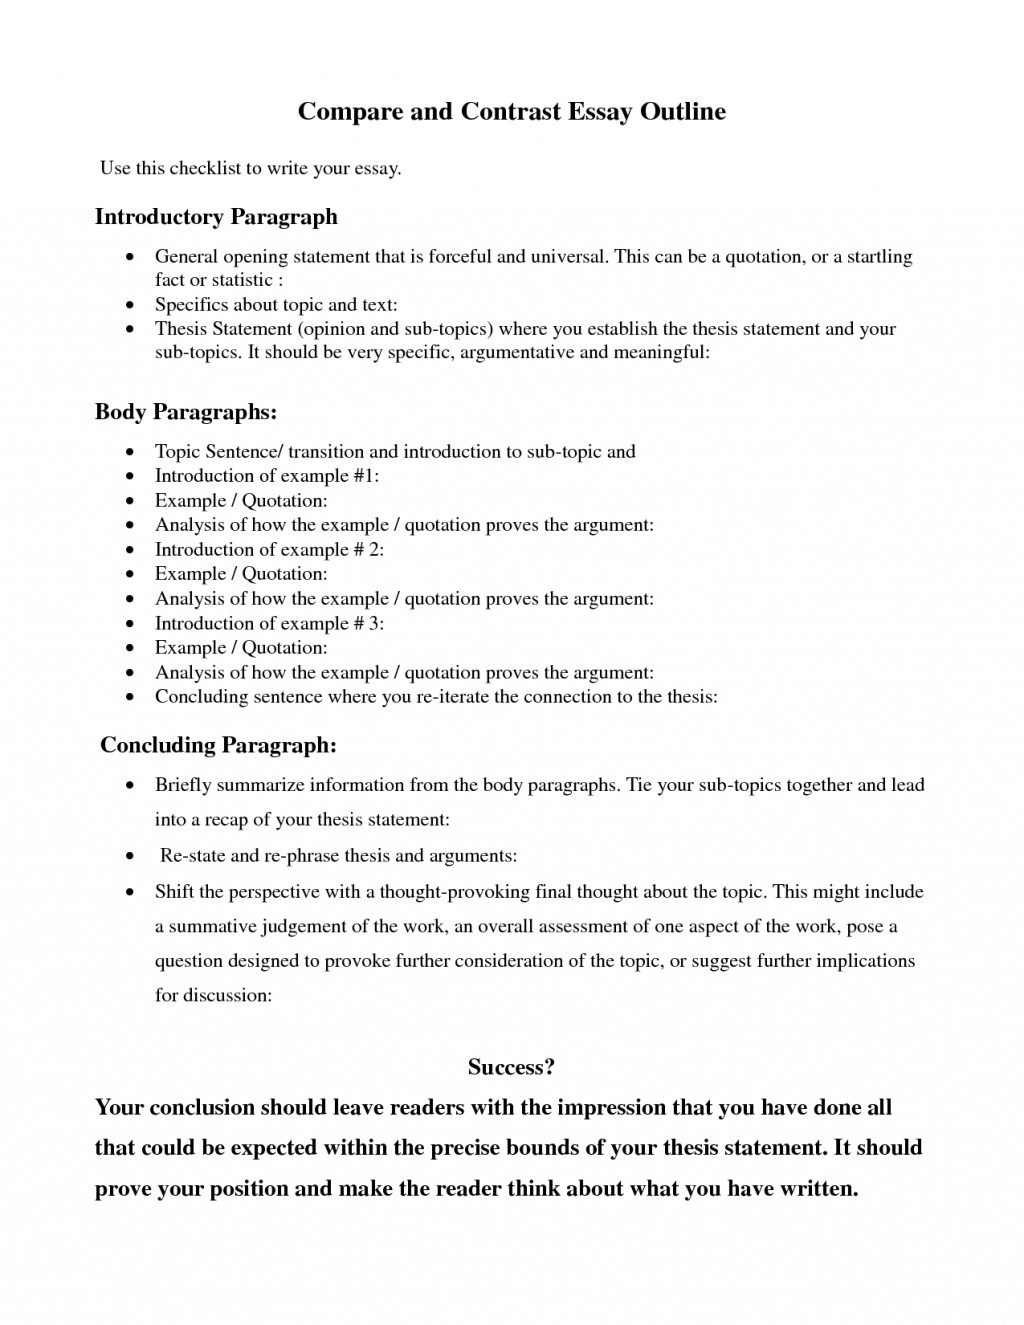 001 Essay Example How To Write Compare And Contrast Outstanding A Outline Comparison Ppt Middle School Large